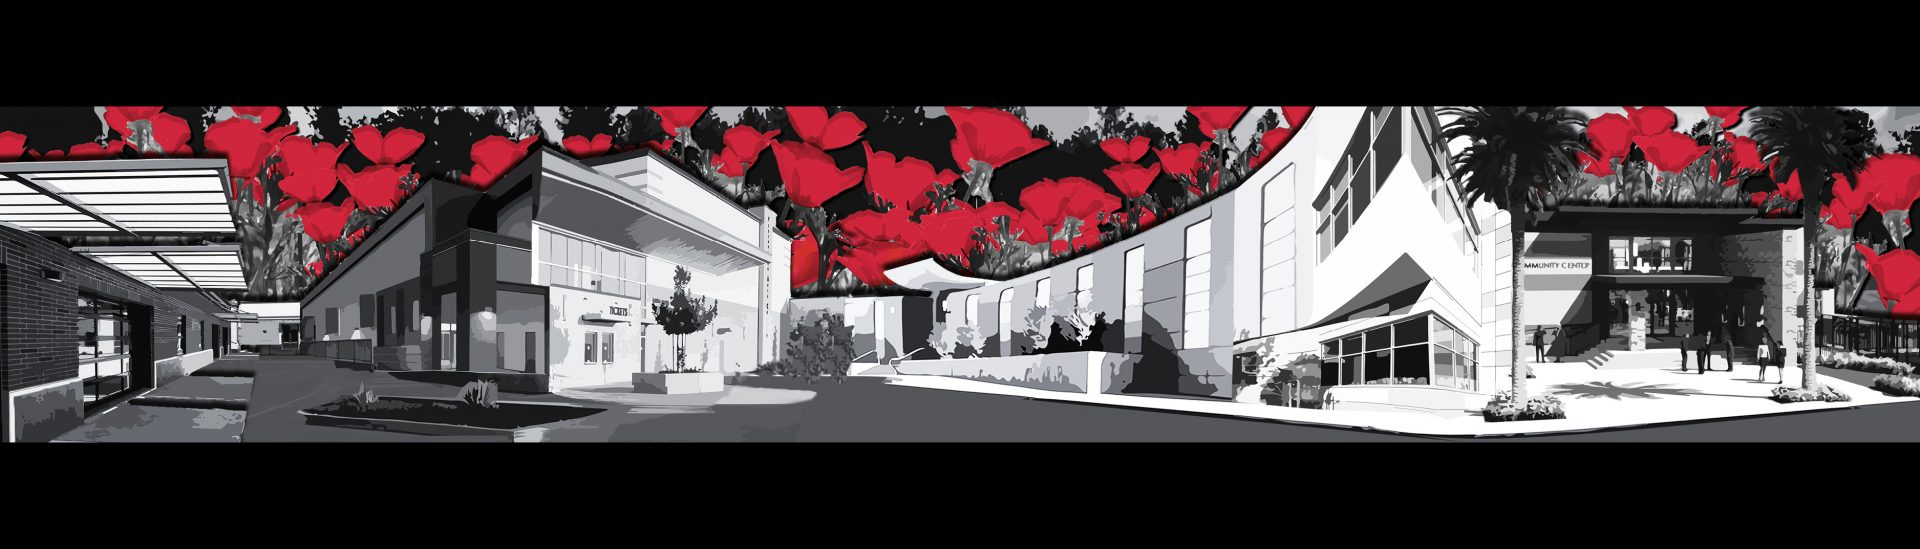 Mural Design Unveiled for New Sacramento Office Building